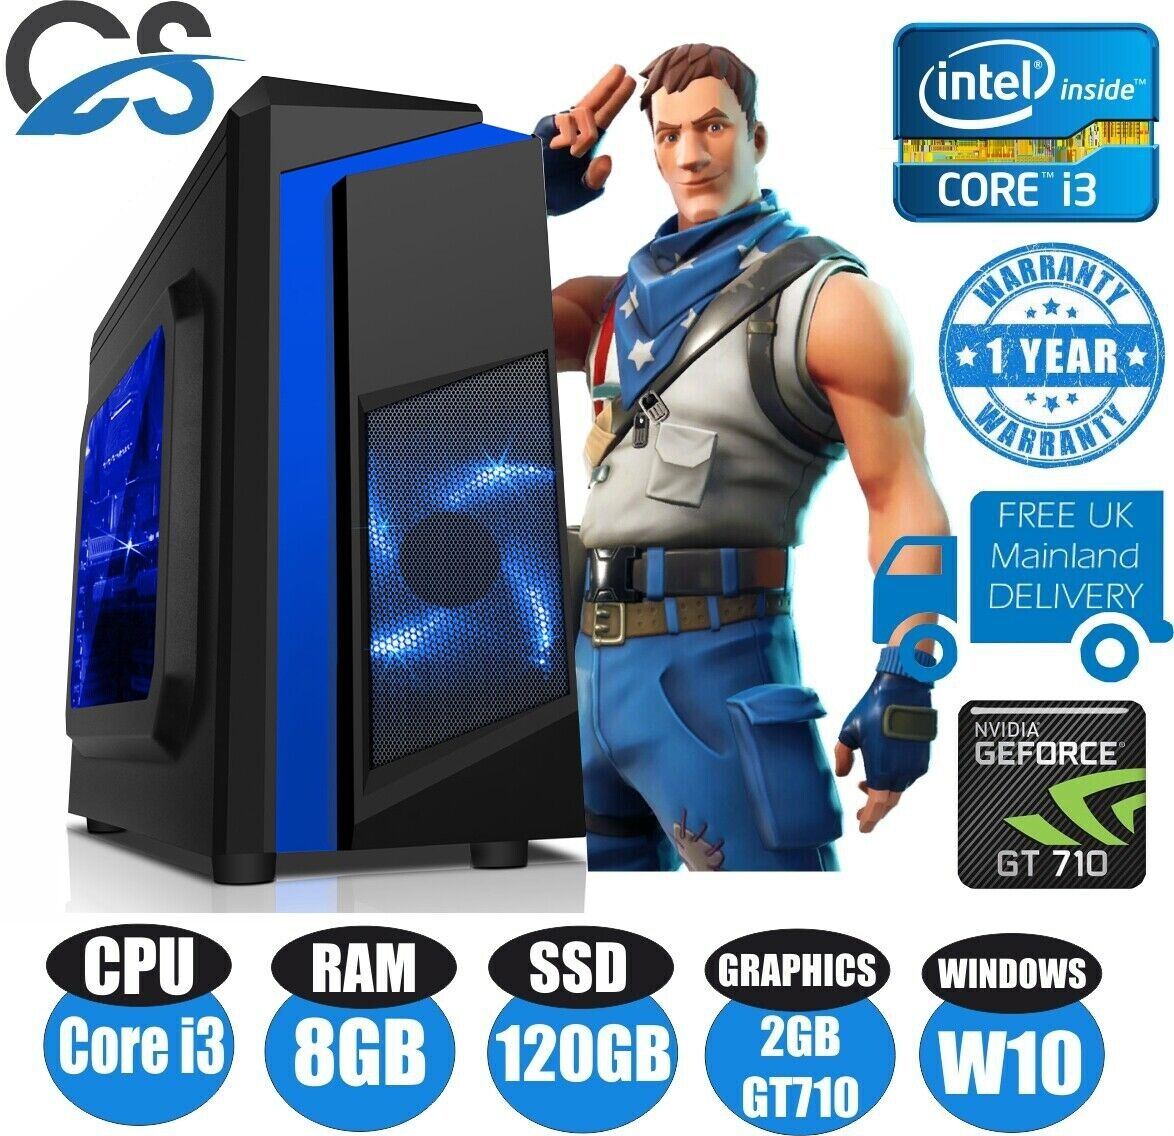 Computer Games - FAST Gaming Computer PC Intel Core i3 8GB 120GB SSD Windows 10 2GB GT710